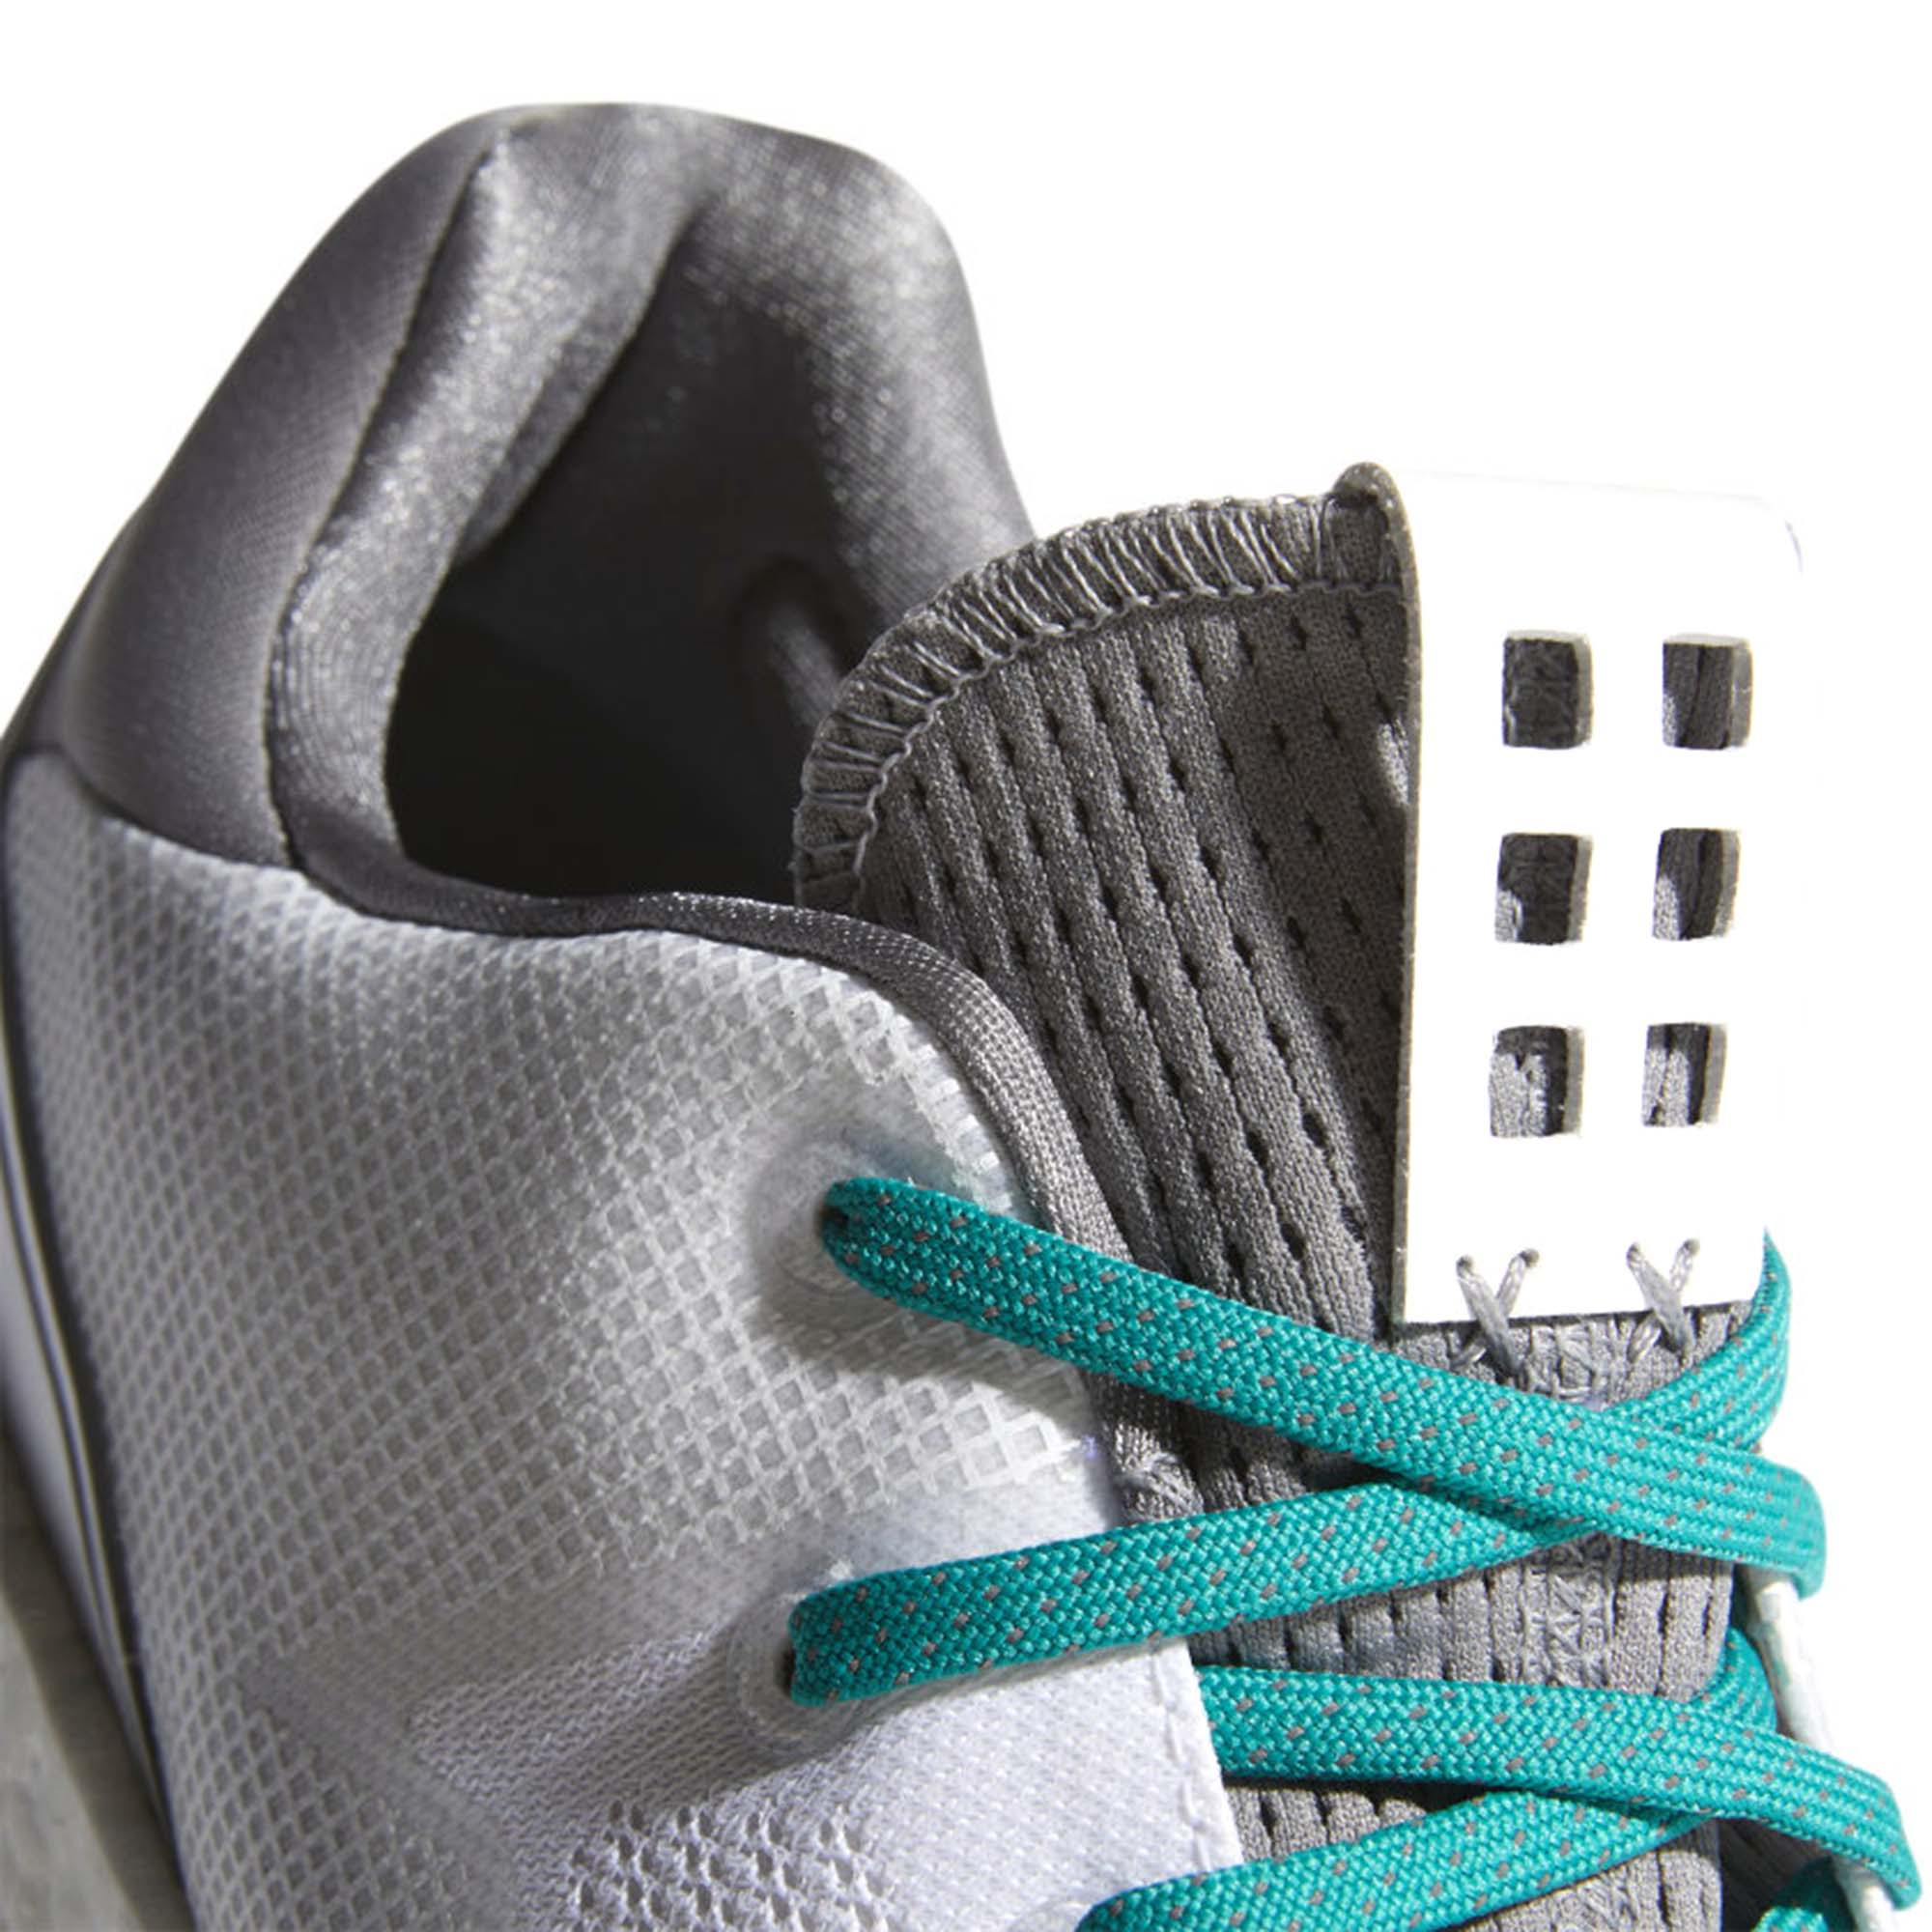 Crossknit Boost DPR LE Golf Shoes EG8986